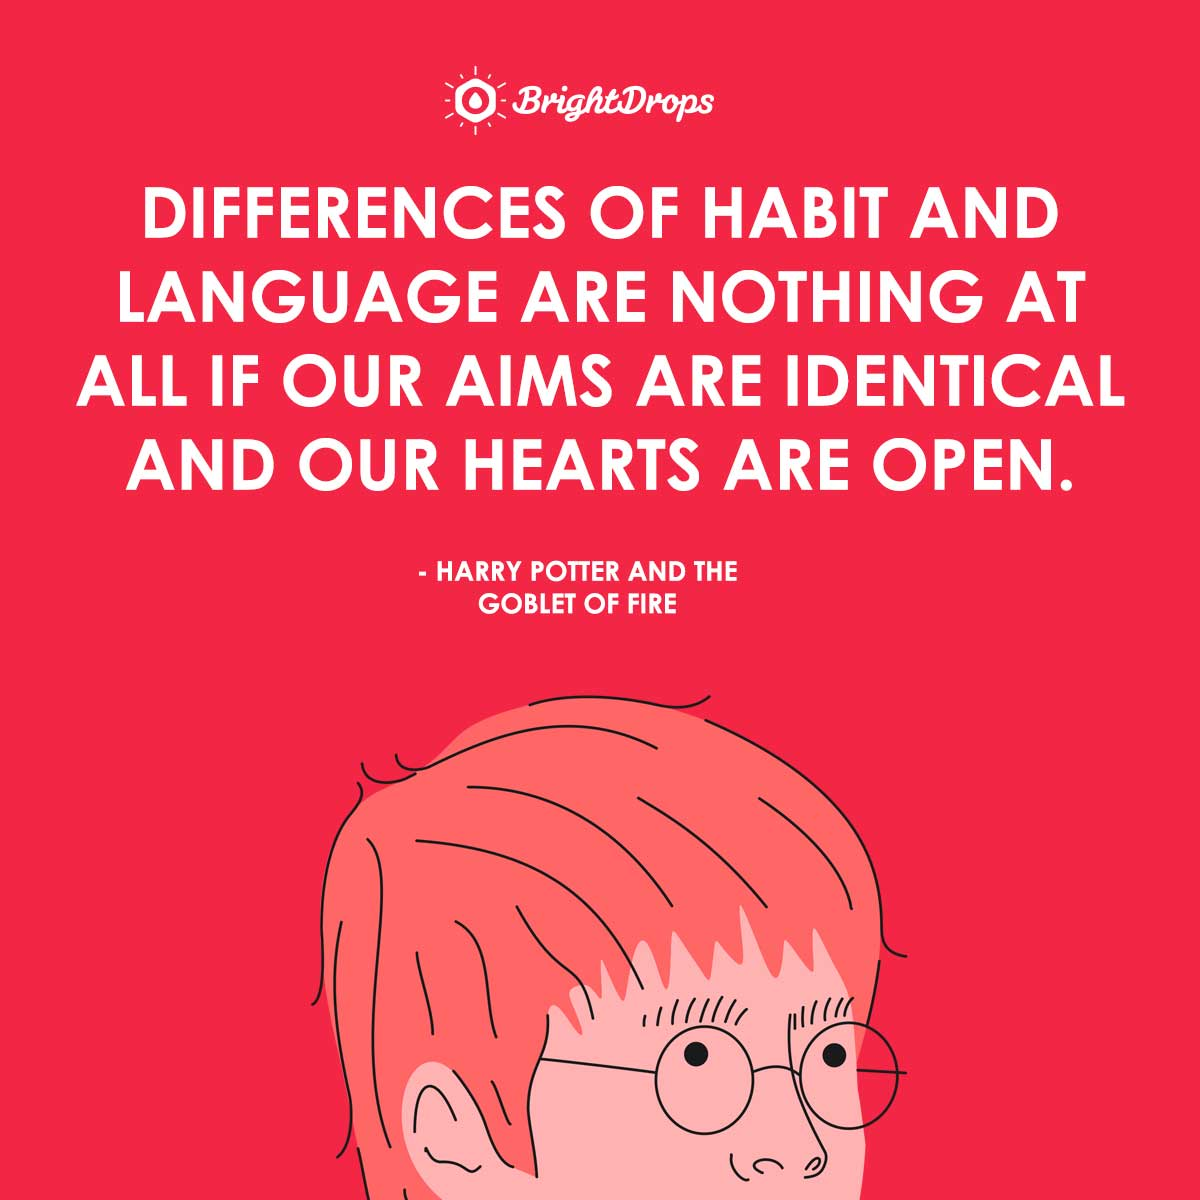 Differences of habit and language are nothing at all if our aims are identical and our hearts are open. - Harry Potter and the Goblet of Fire